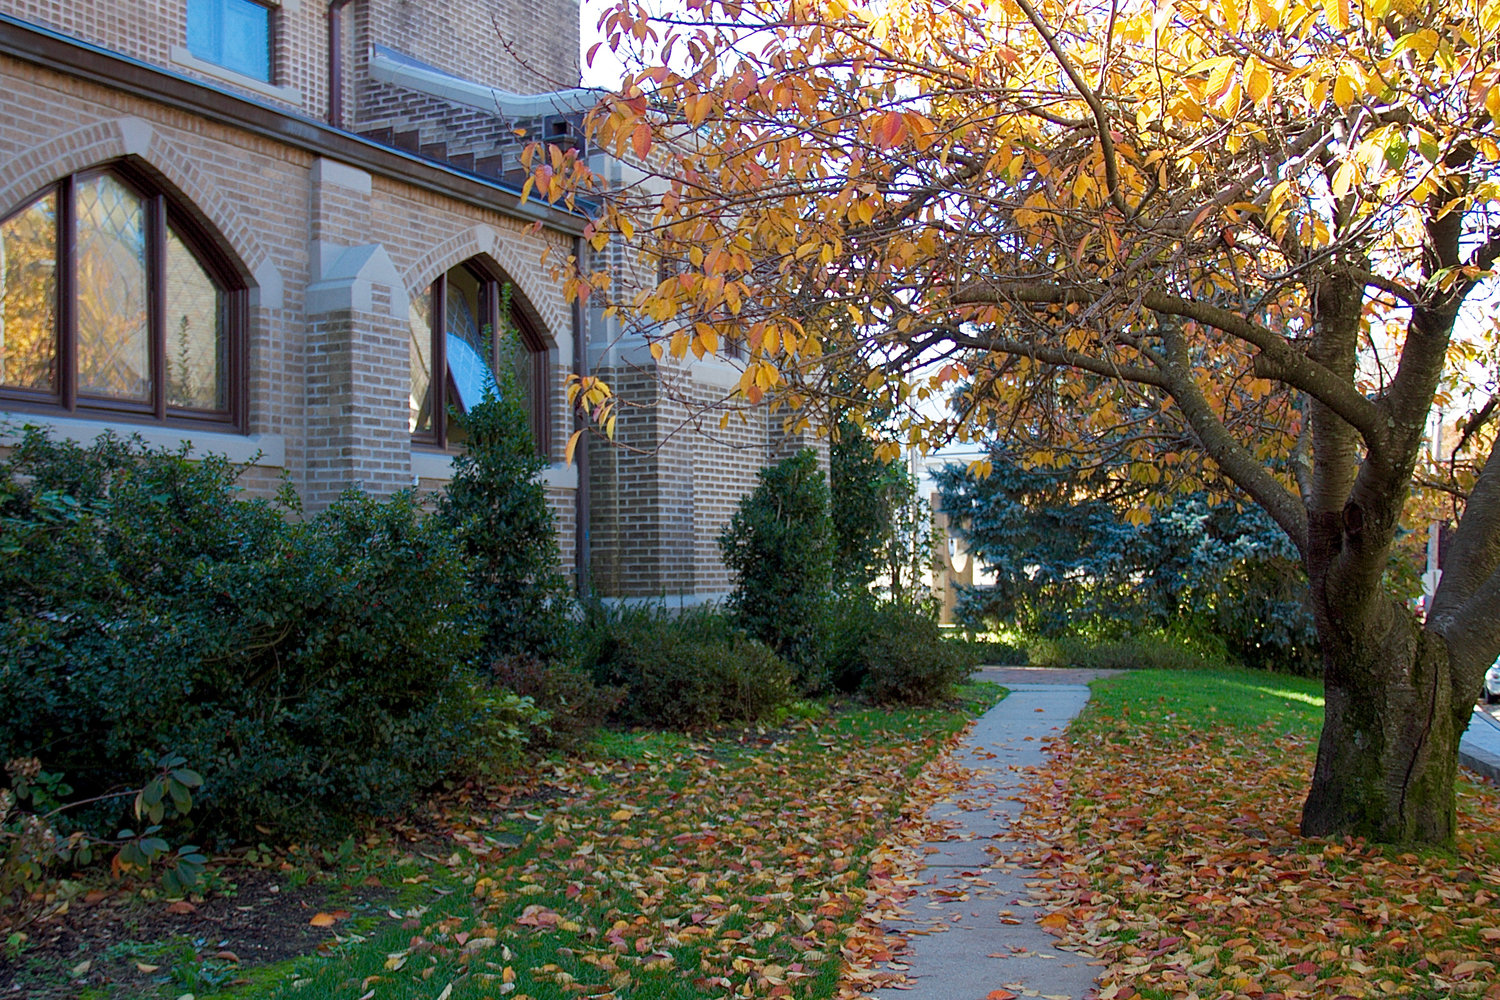 The sidewalks in Sea Cliff are rich with fall colors as the leaves fall to the ground.